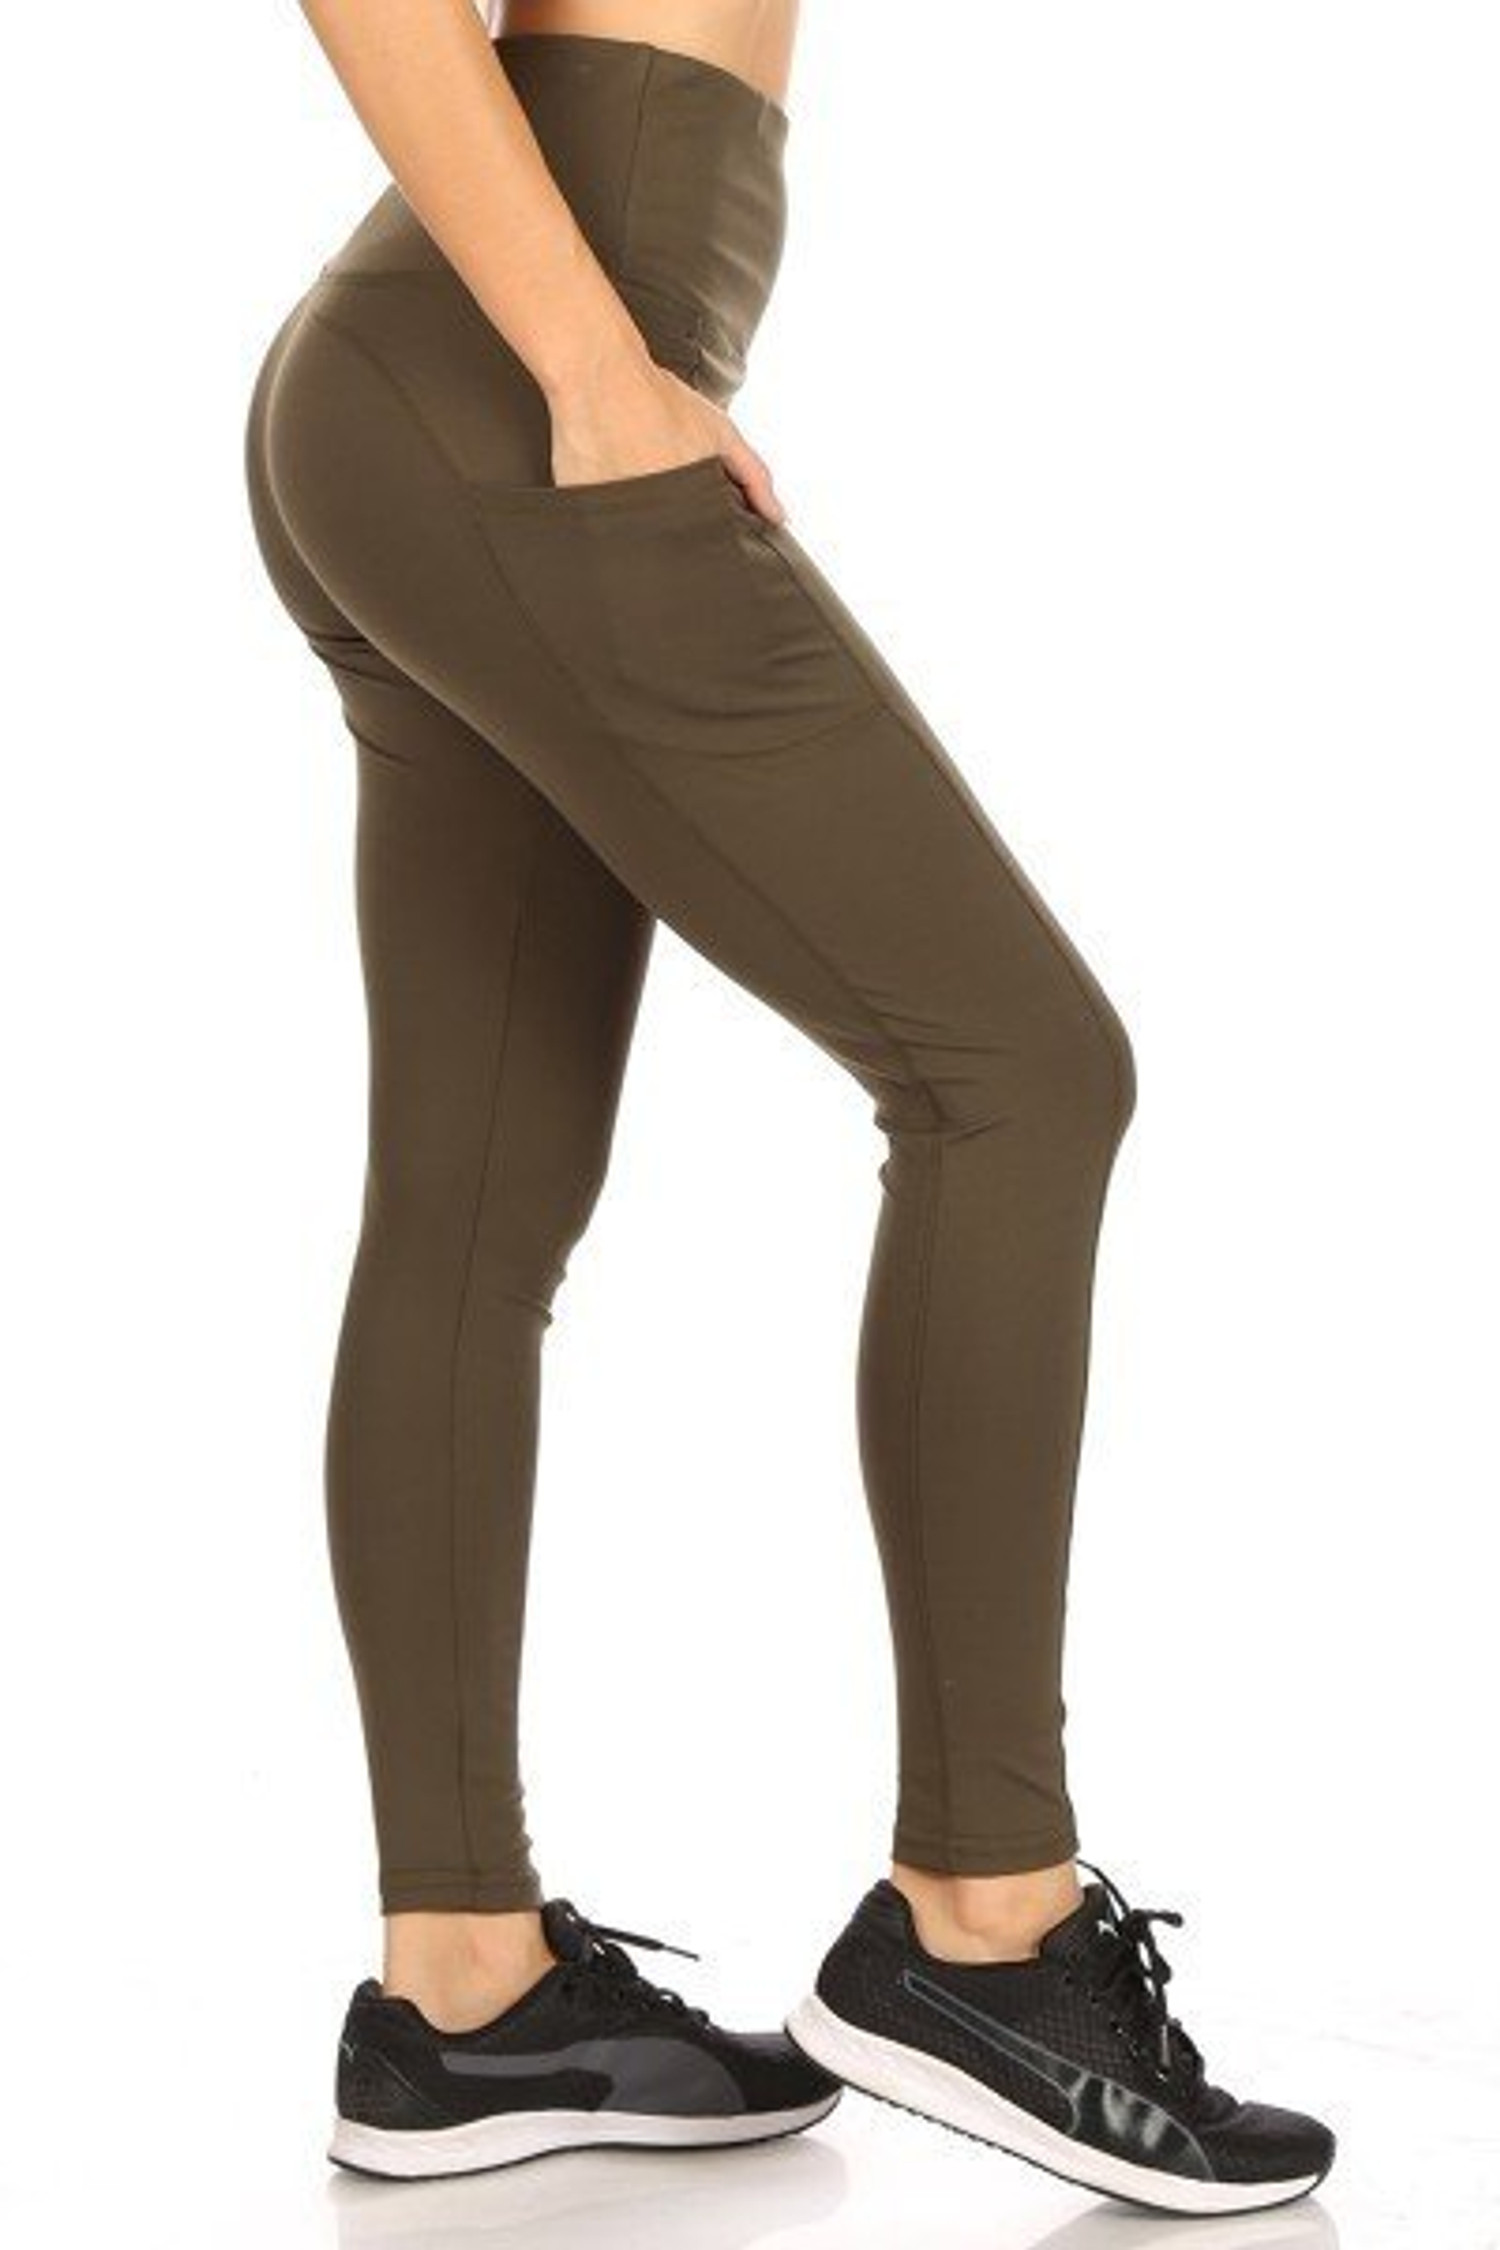 Solid High Waisted Sports Leggings with Side Pockets